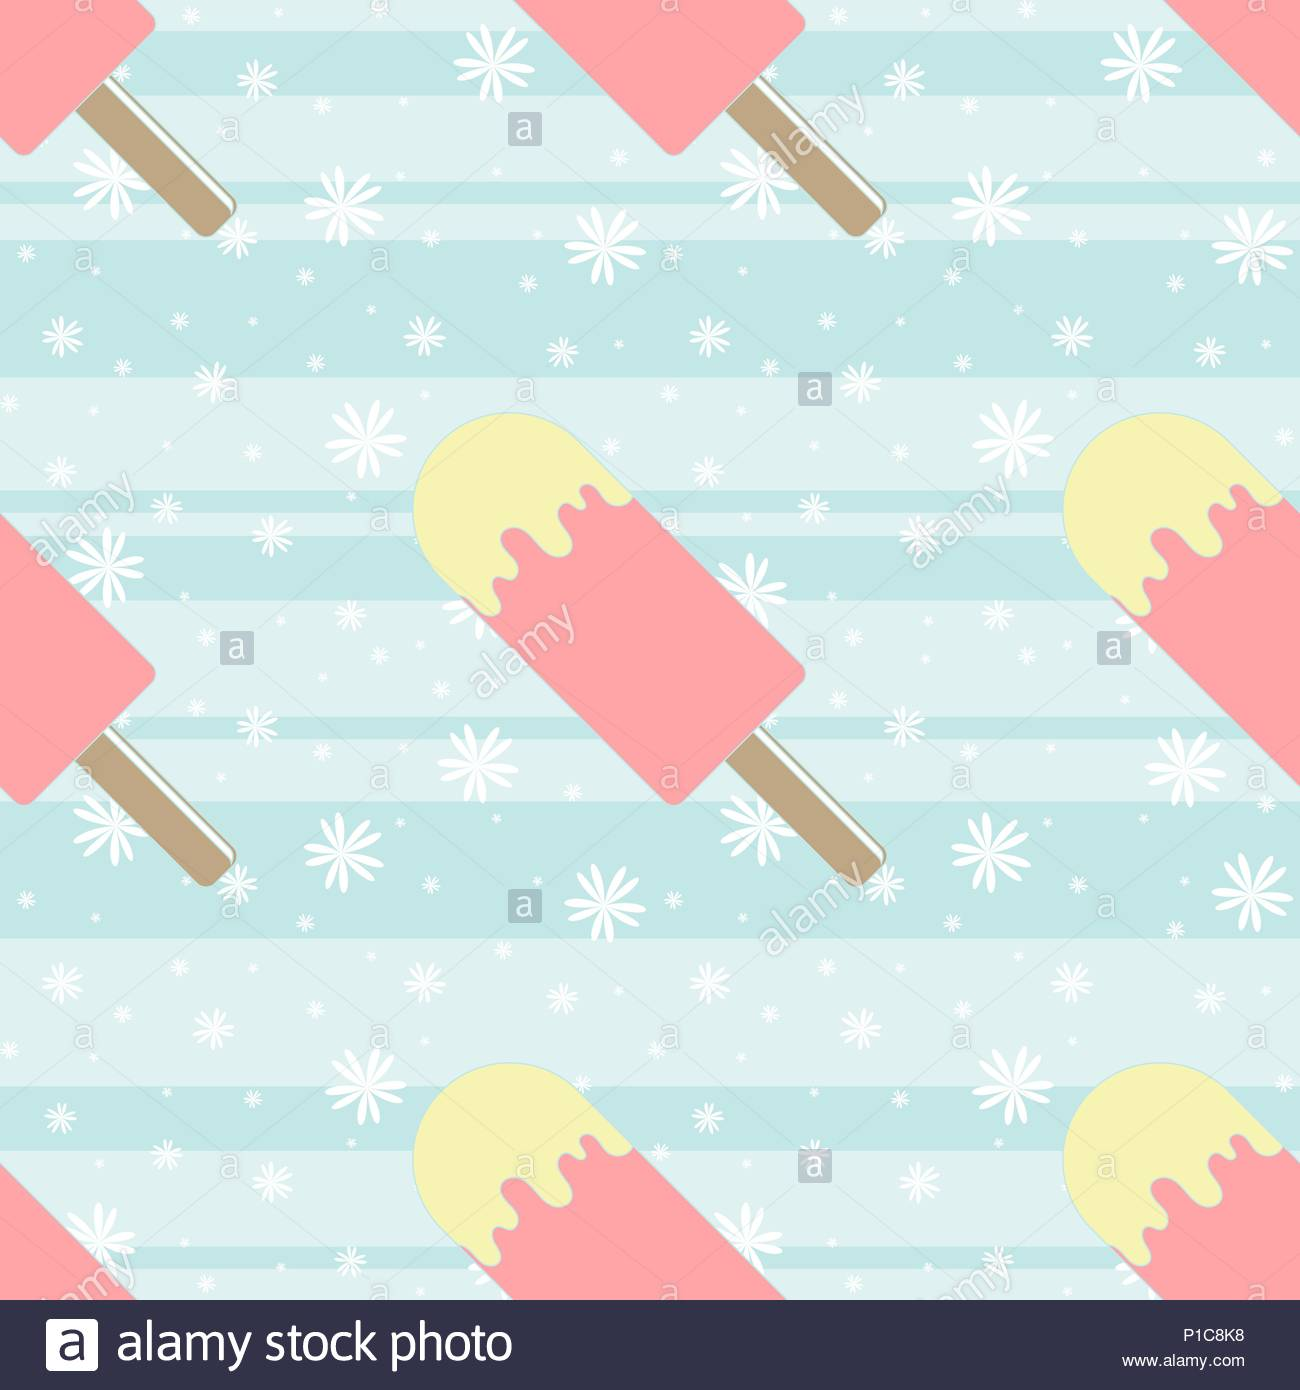 Color Seamless Pattern Of Delicious Melting Ice Cream On A Blue Background Simple Flat Vector Illustration Suitable For Wallpaper Fabric Wrapping